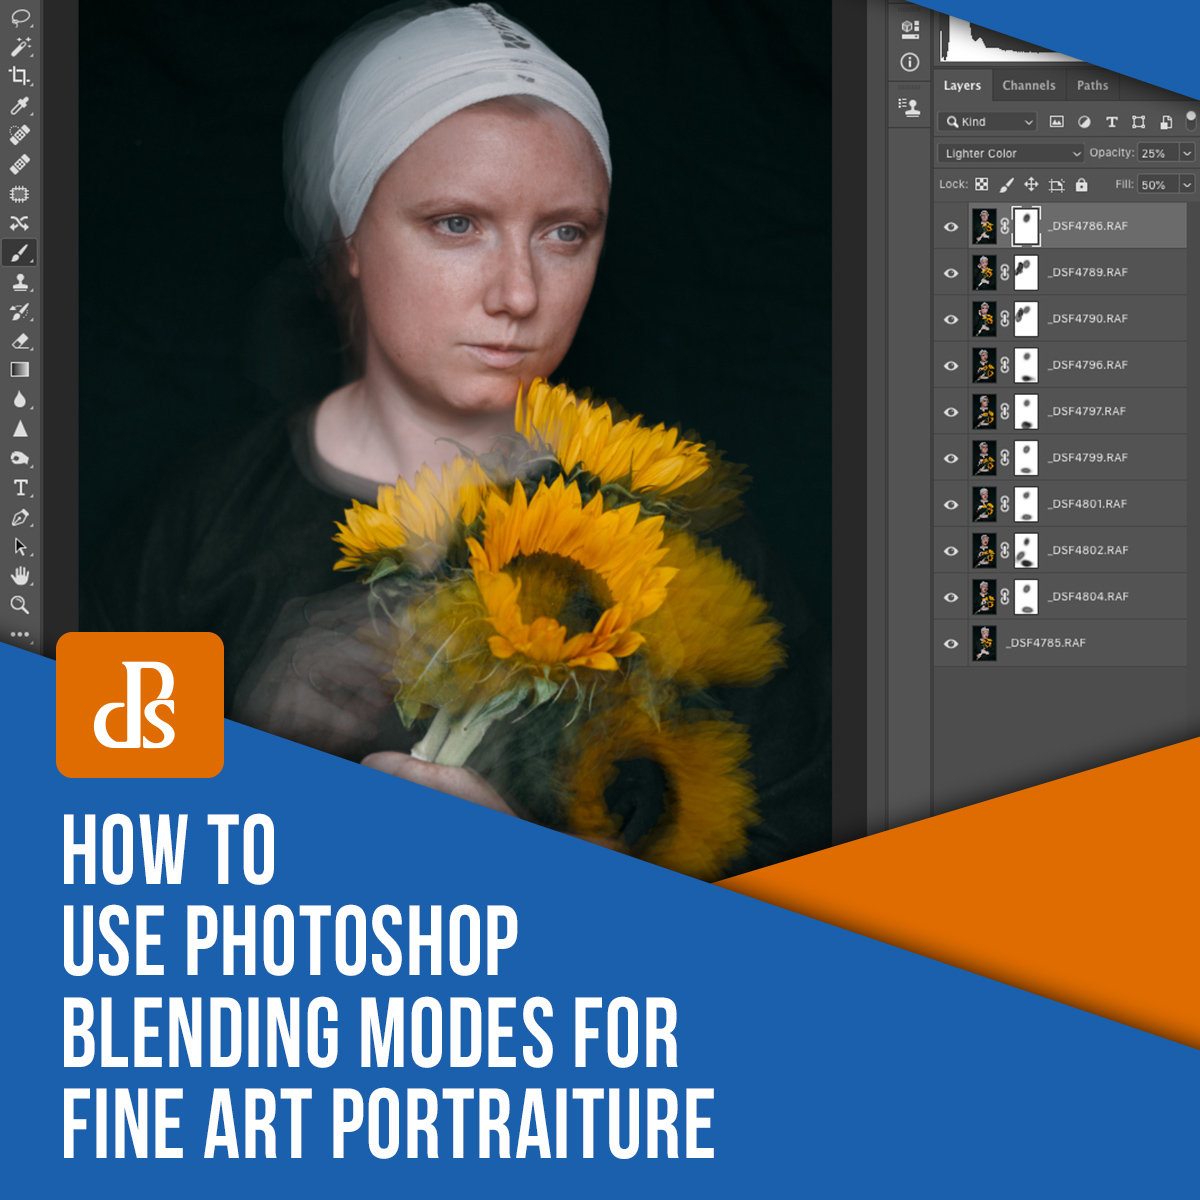 photoshop-blending-modes-for-fine-art-portraiture